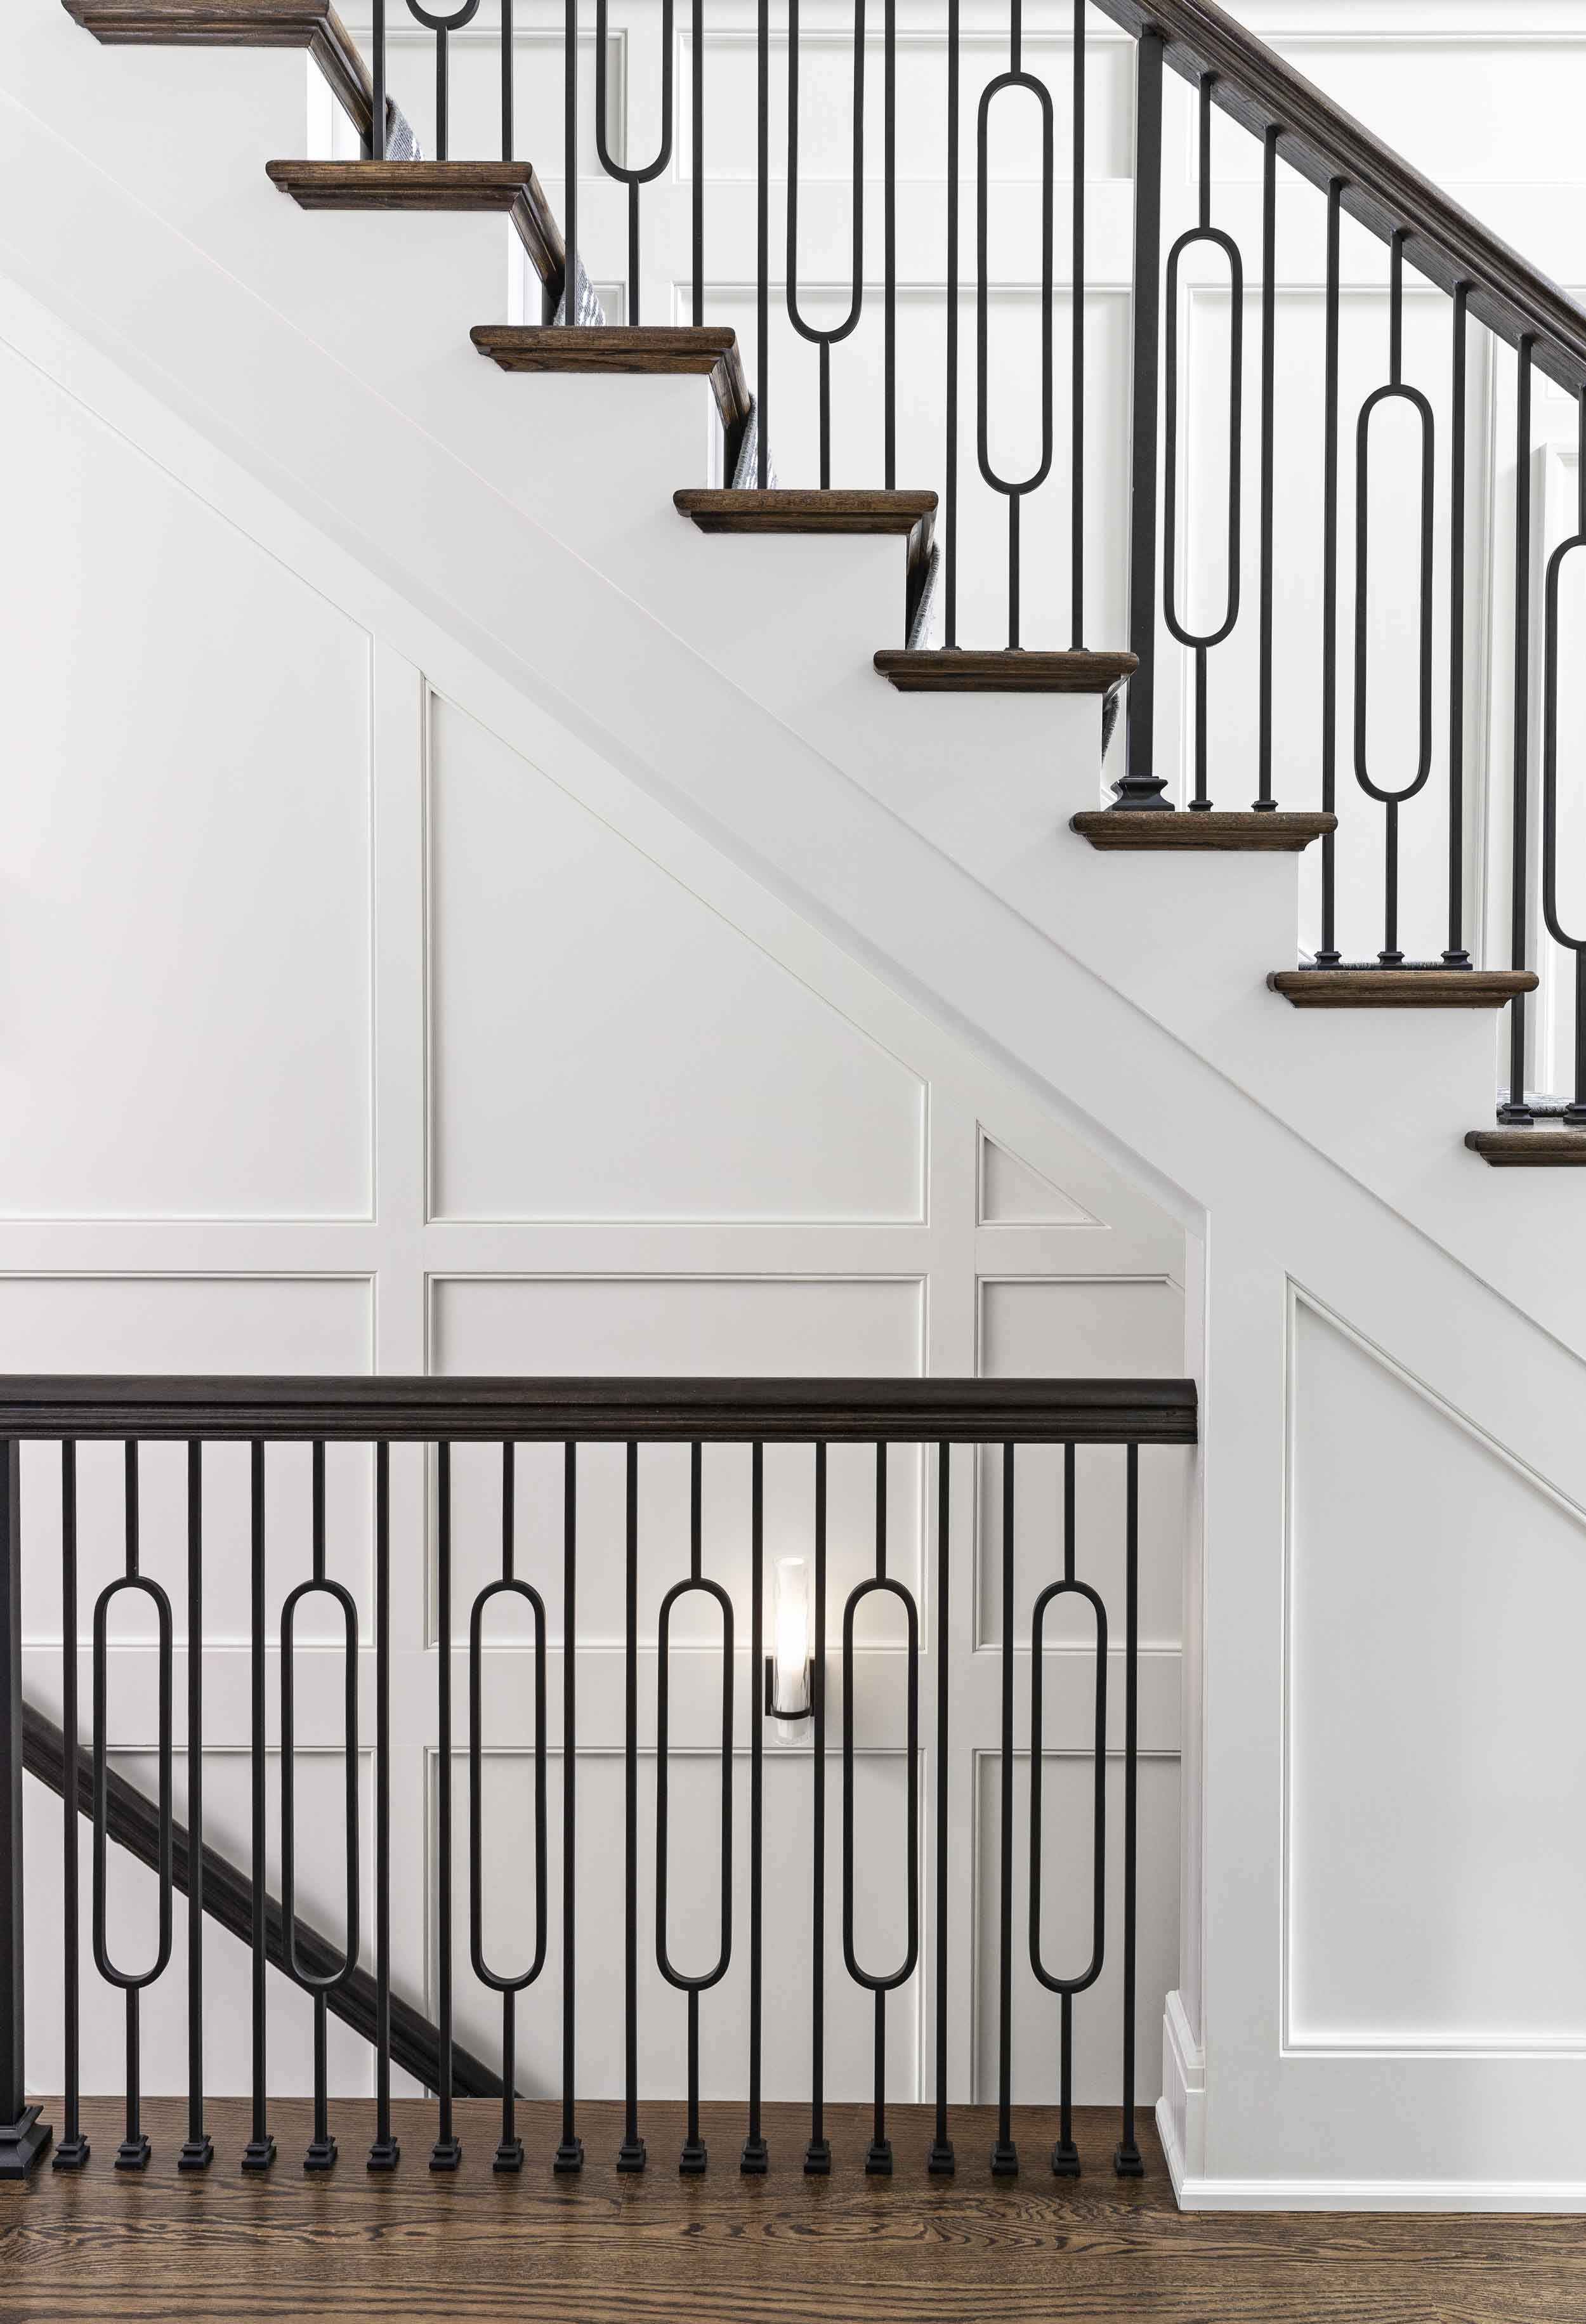 Larchlea staircase details